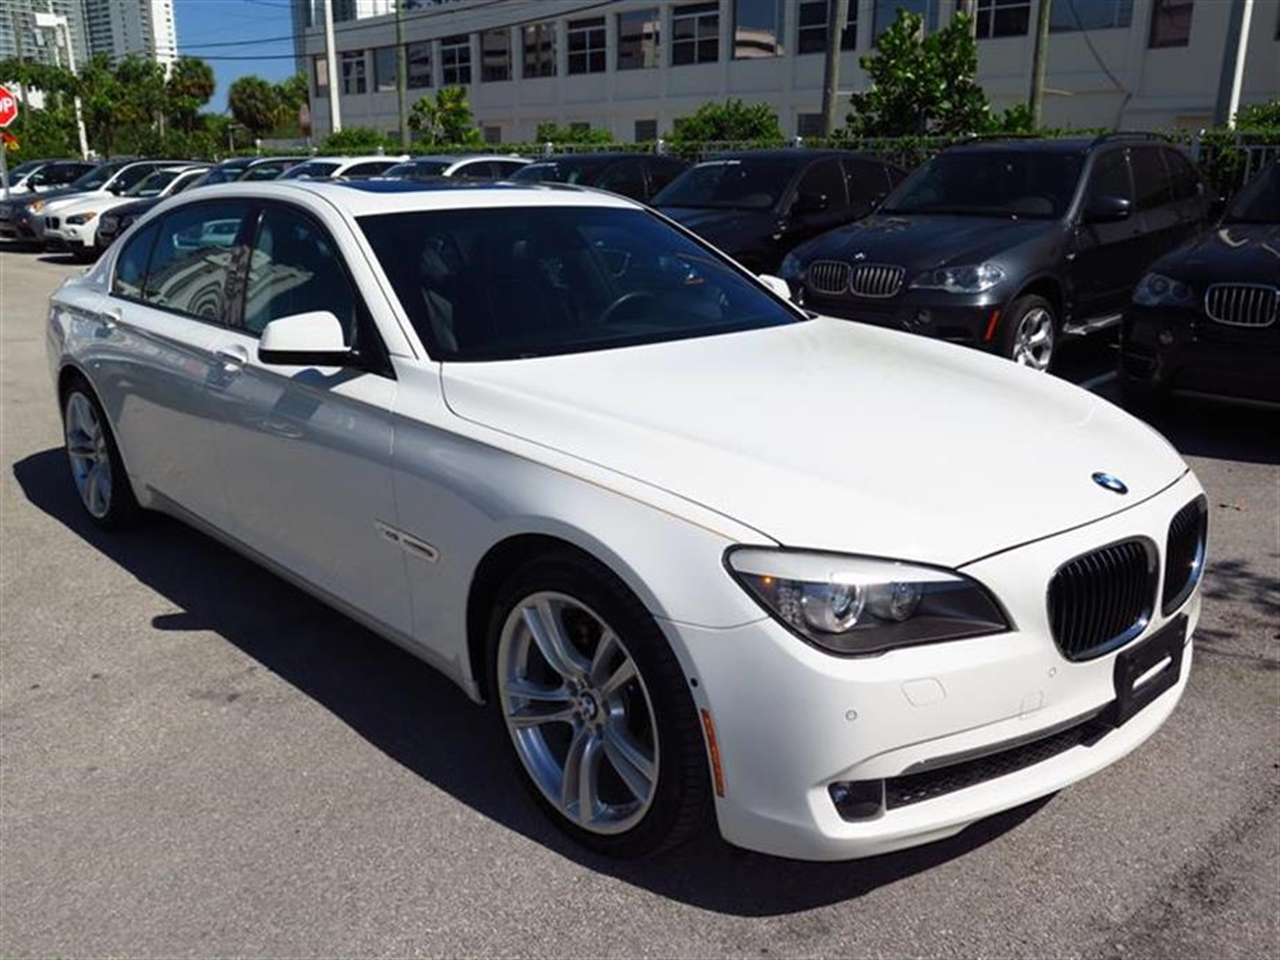 2012 BMW 7 SERIES 4dr Sdn 750Li xDrive AWD 16091 miles 4-zone automatic climate control -inc dra